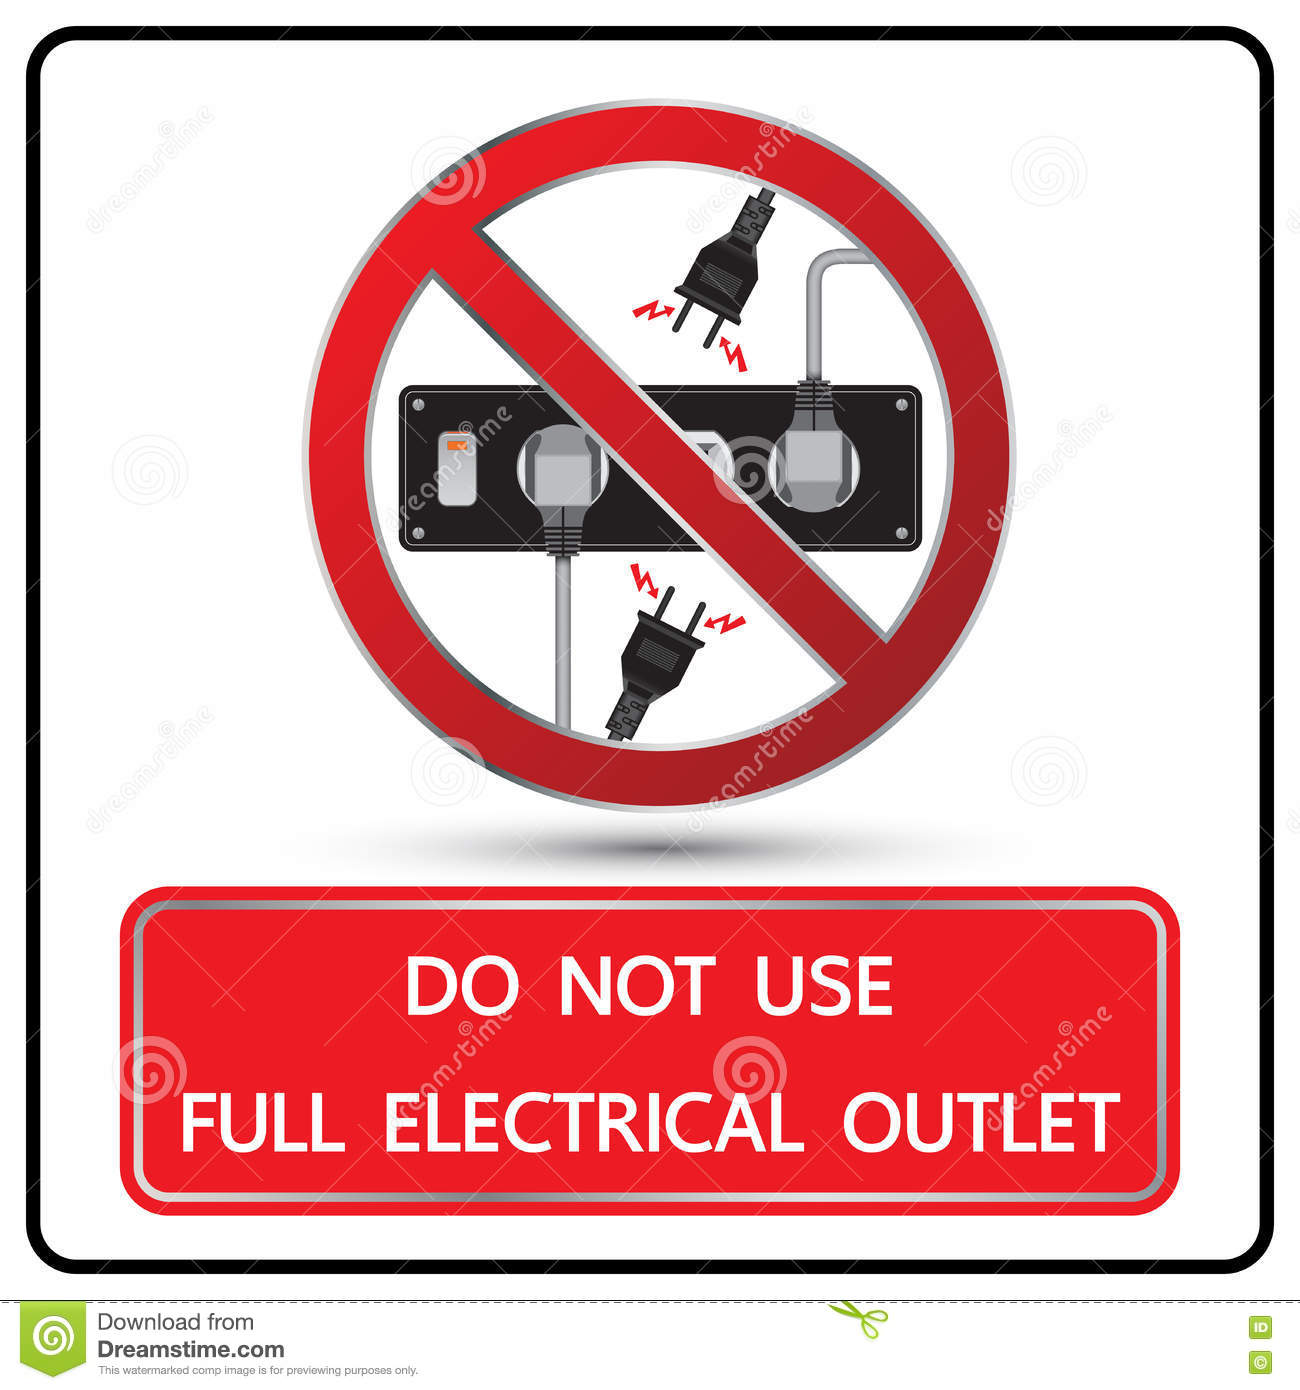 Do Not Use Full Electrical Outlet Sign And Symbol Stock ...